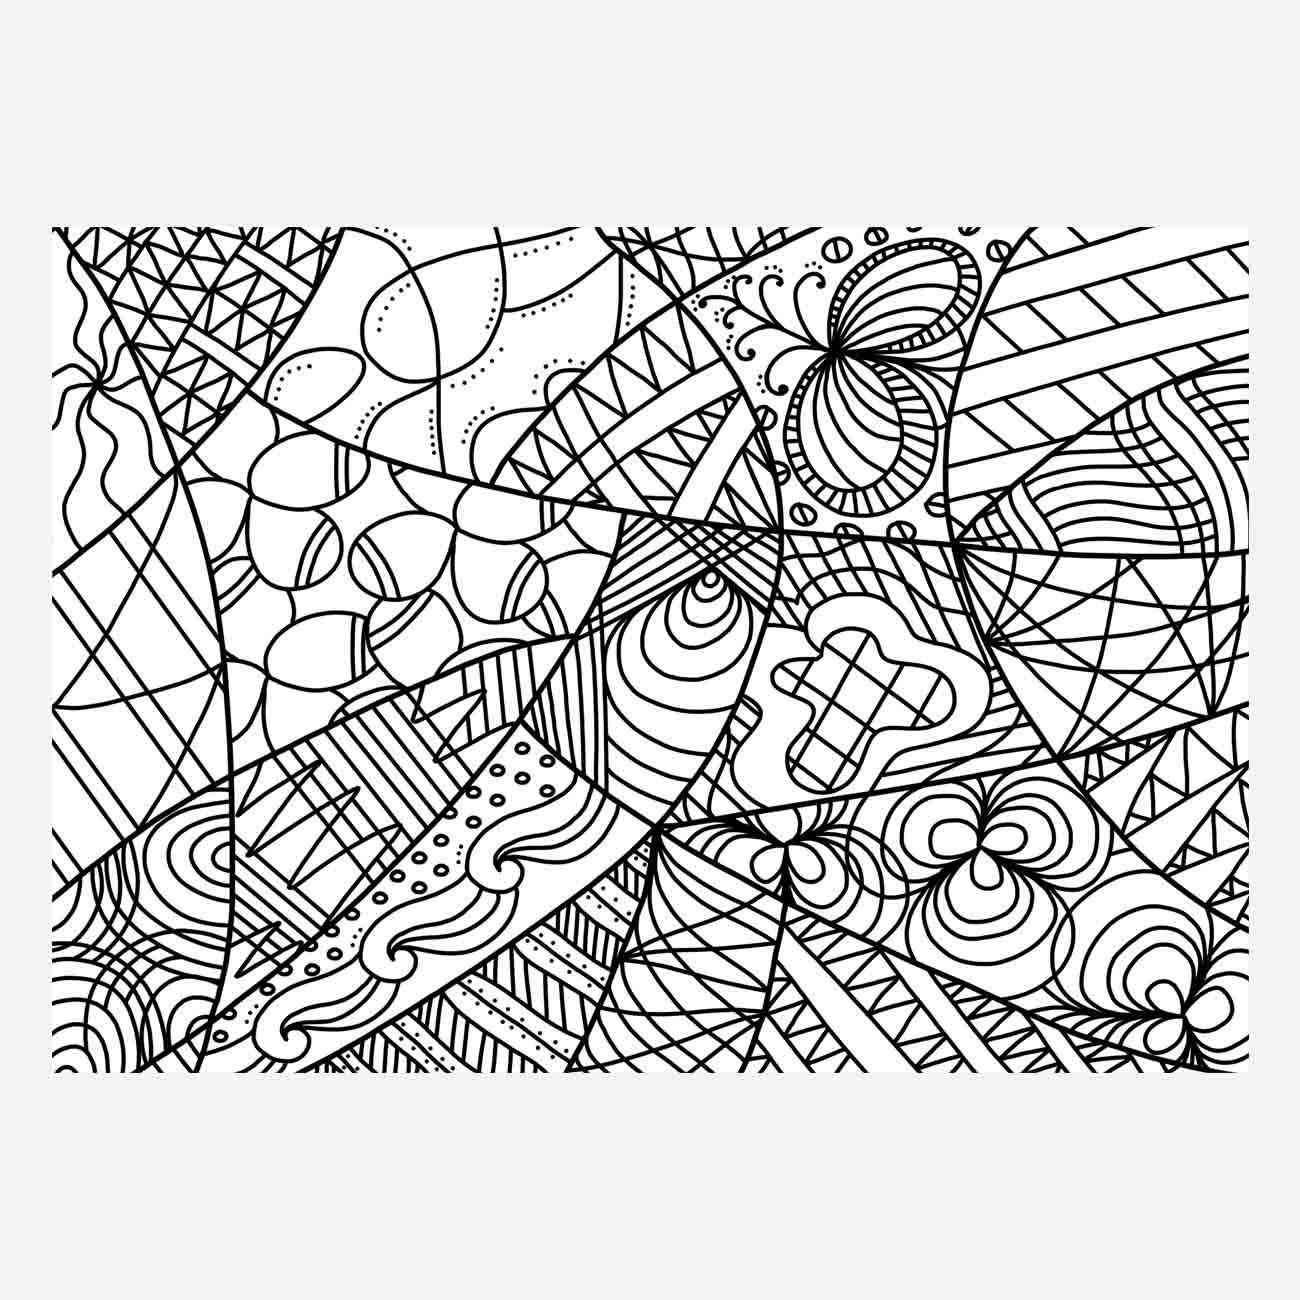 Coloring pages adults pdf - Zentangle Digital Colouring For Adults Zen Colouring Zen Coloring Page Print Coloring Page Adult Coloring Sheet Doodle Gift Print